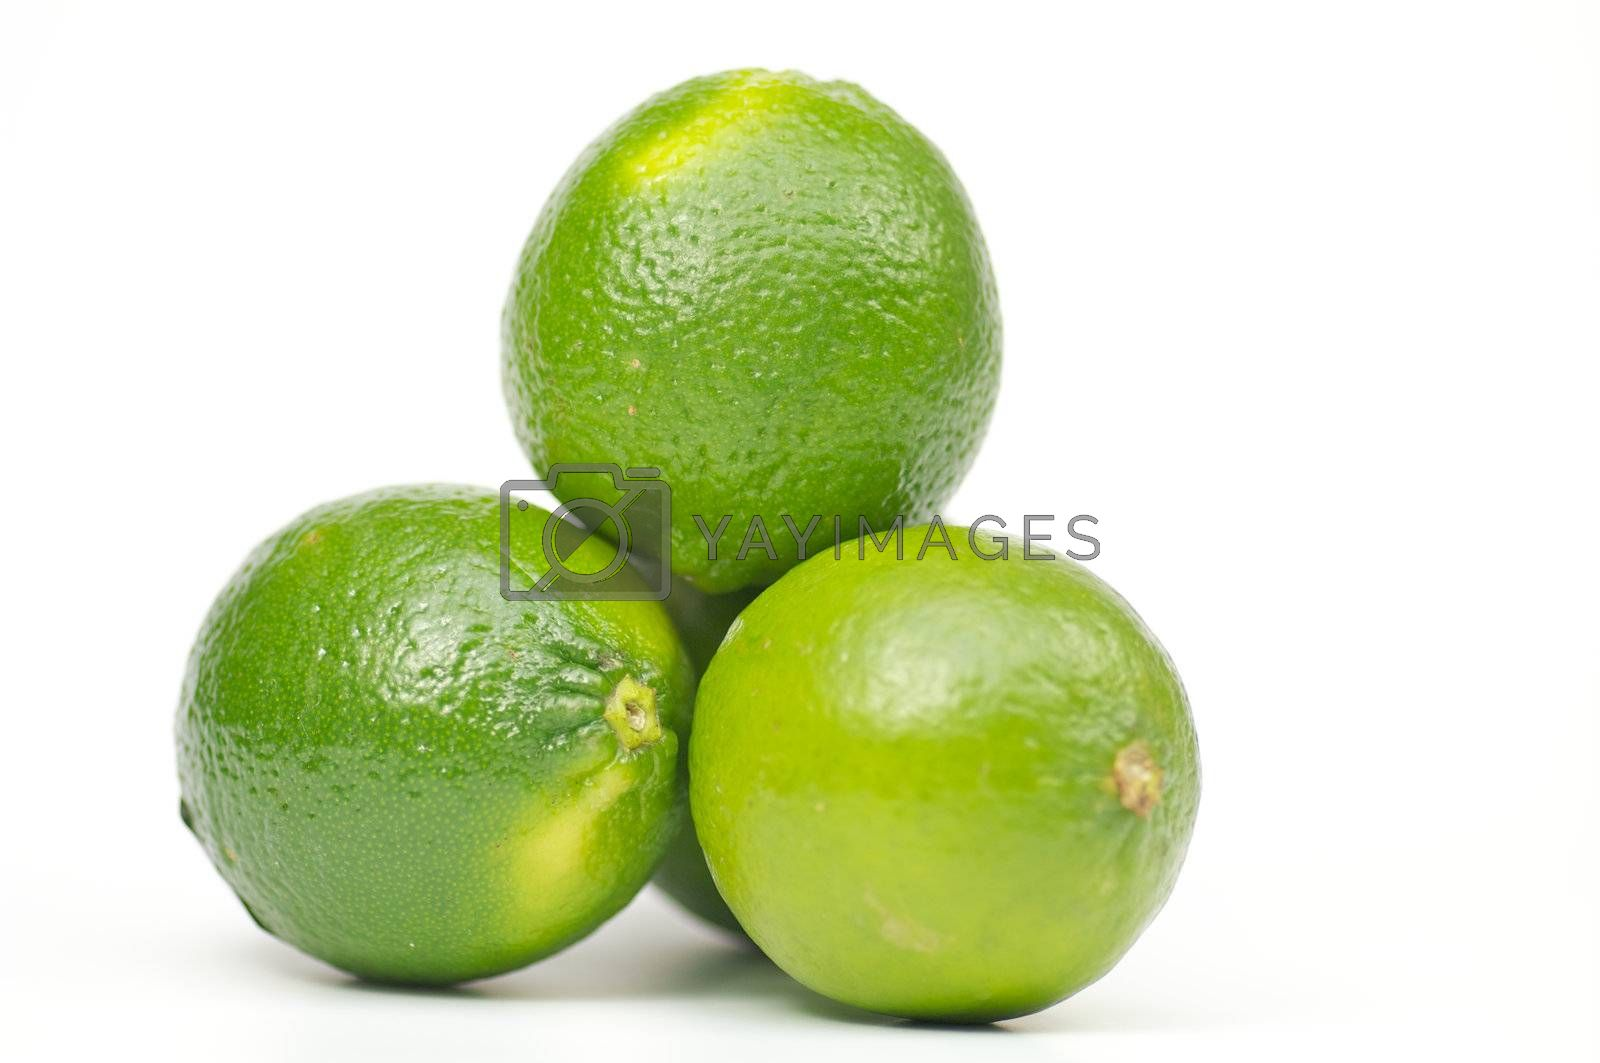 Three green limes on white background